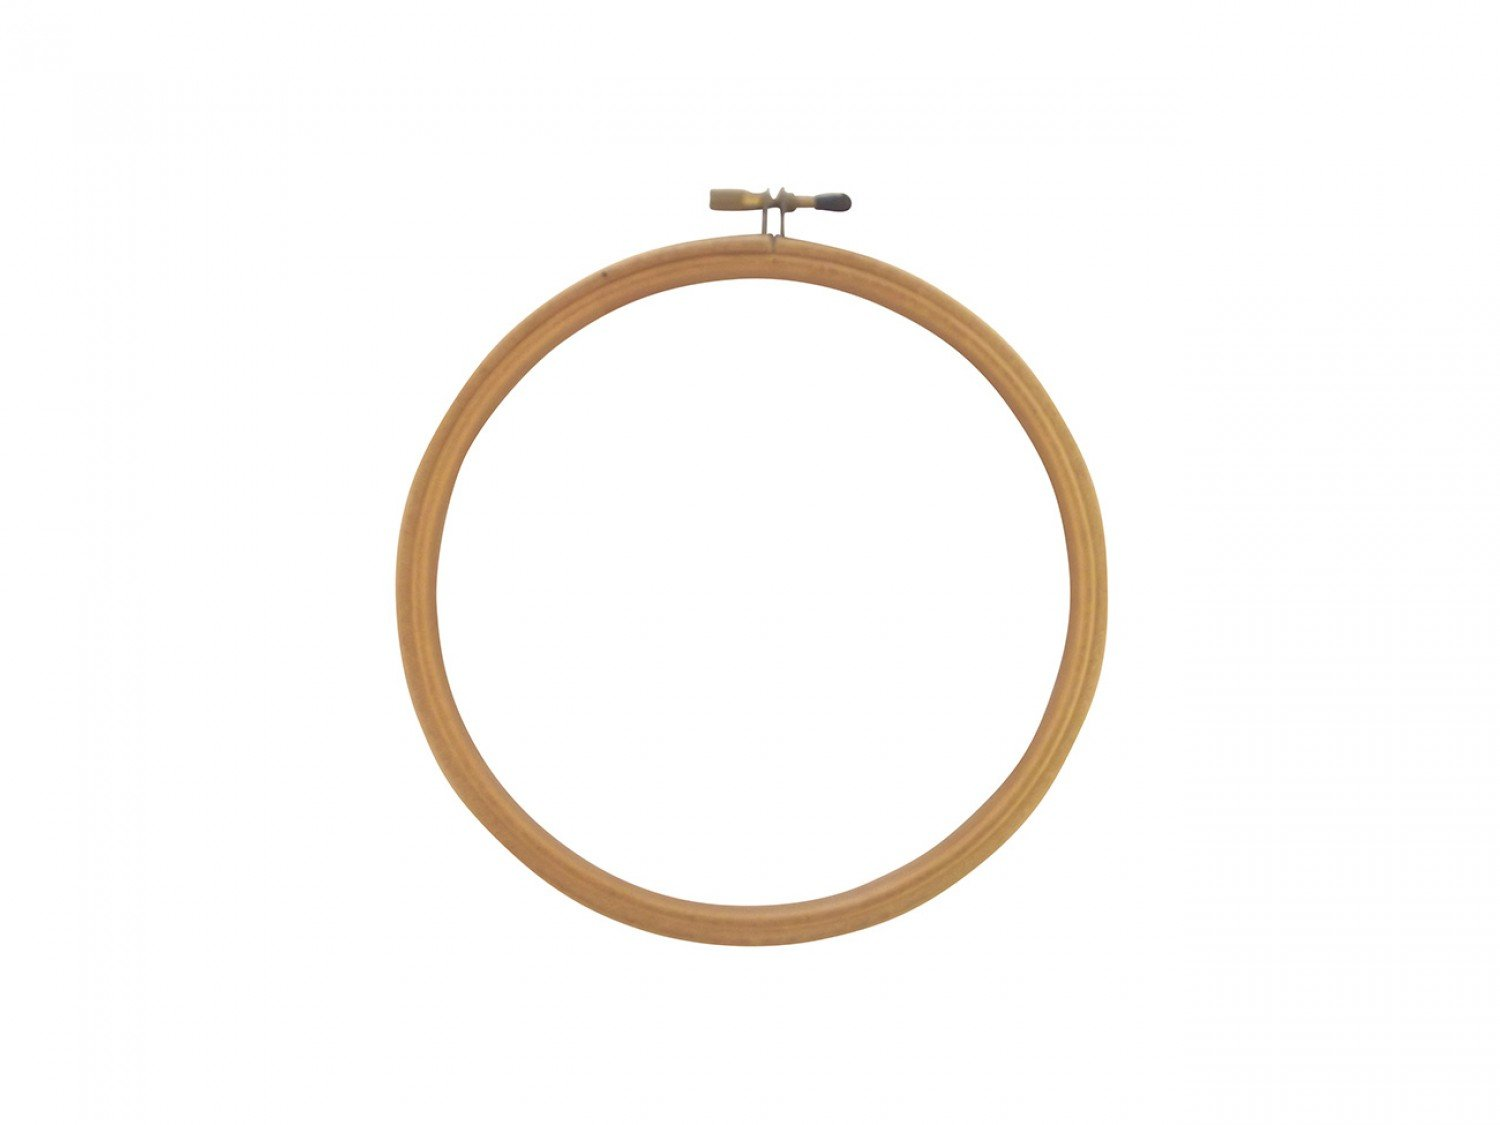 Wood Embroidery Hoop 7